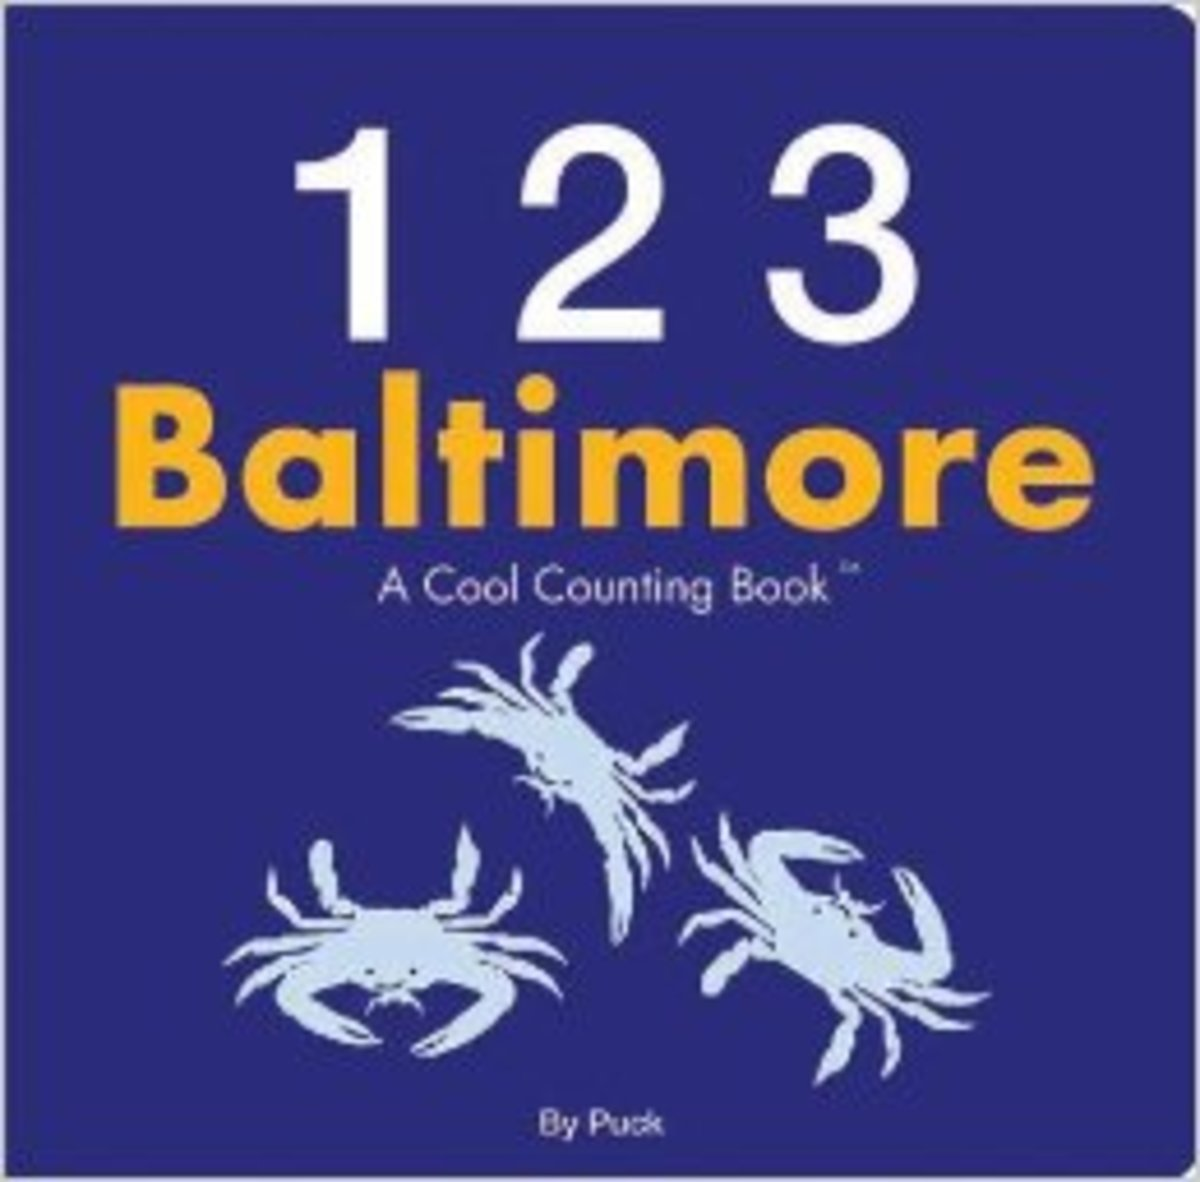 123 Baltimore: A Cool Counting Book (Cool Counting Books) Board book by Puck - Image is from amazon.com